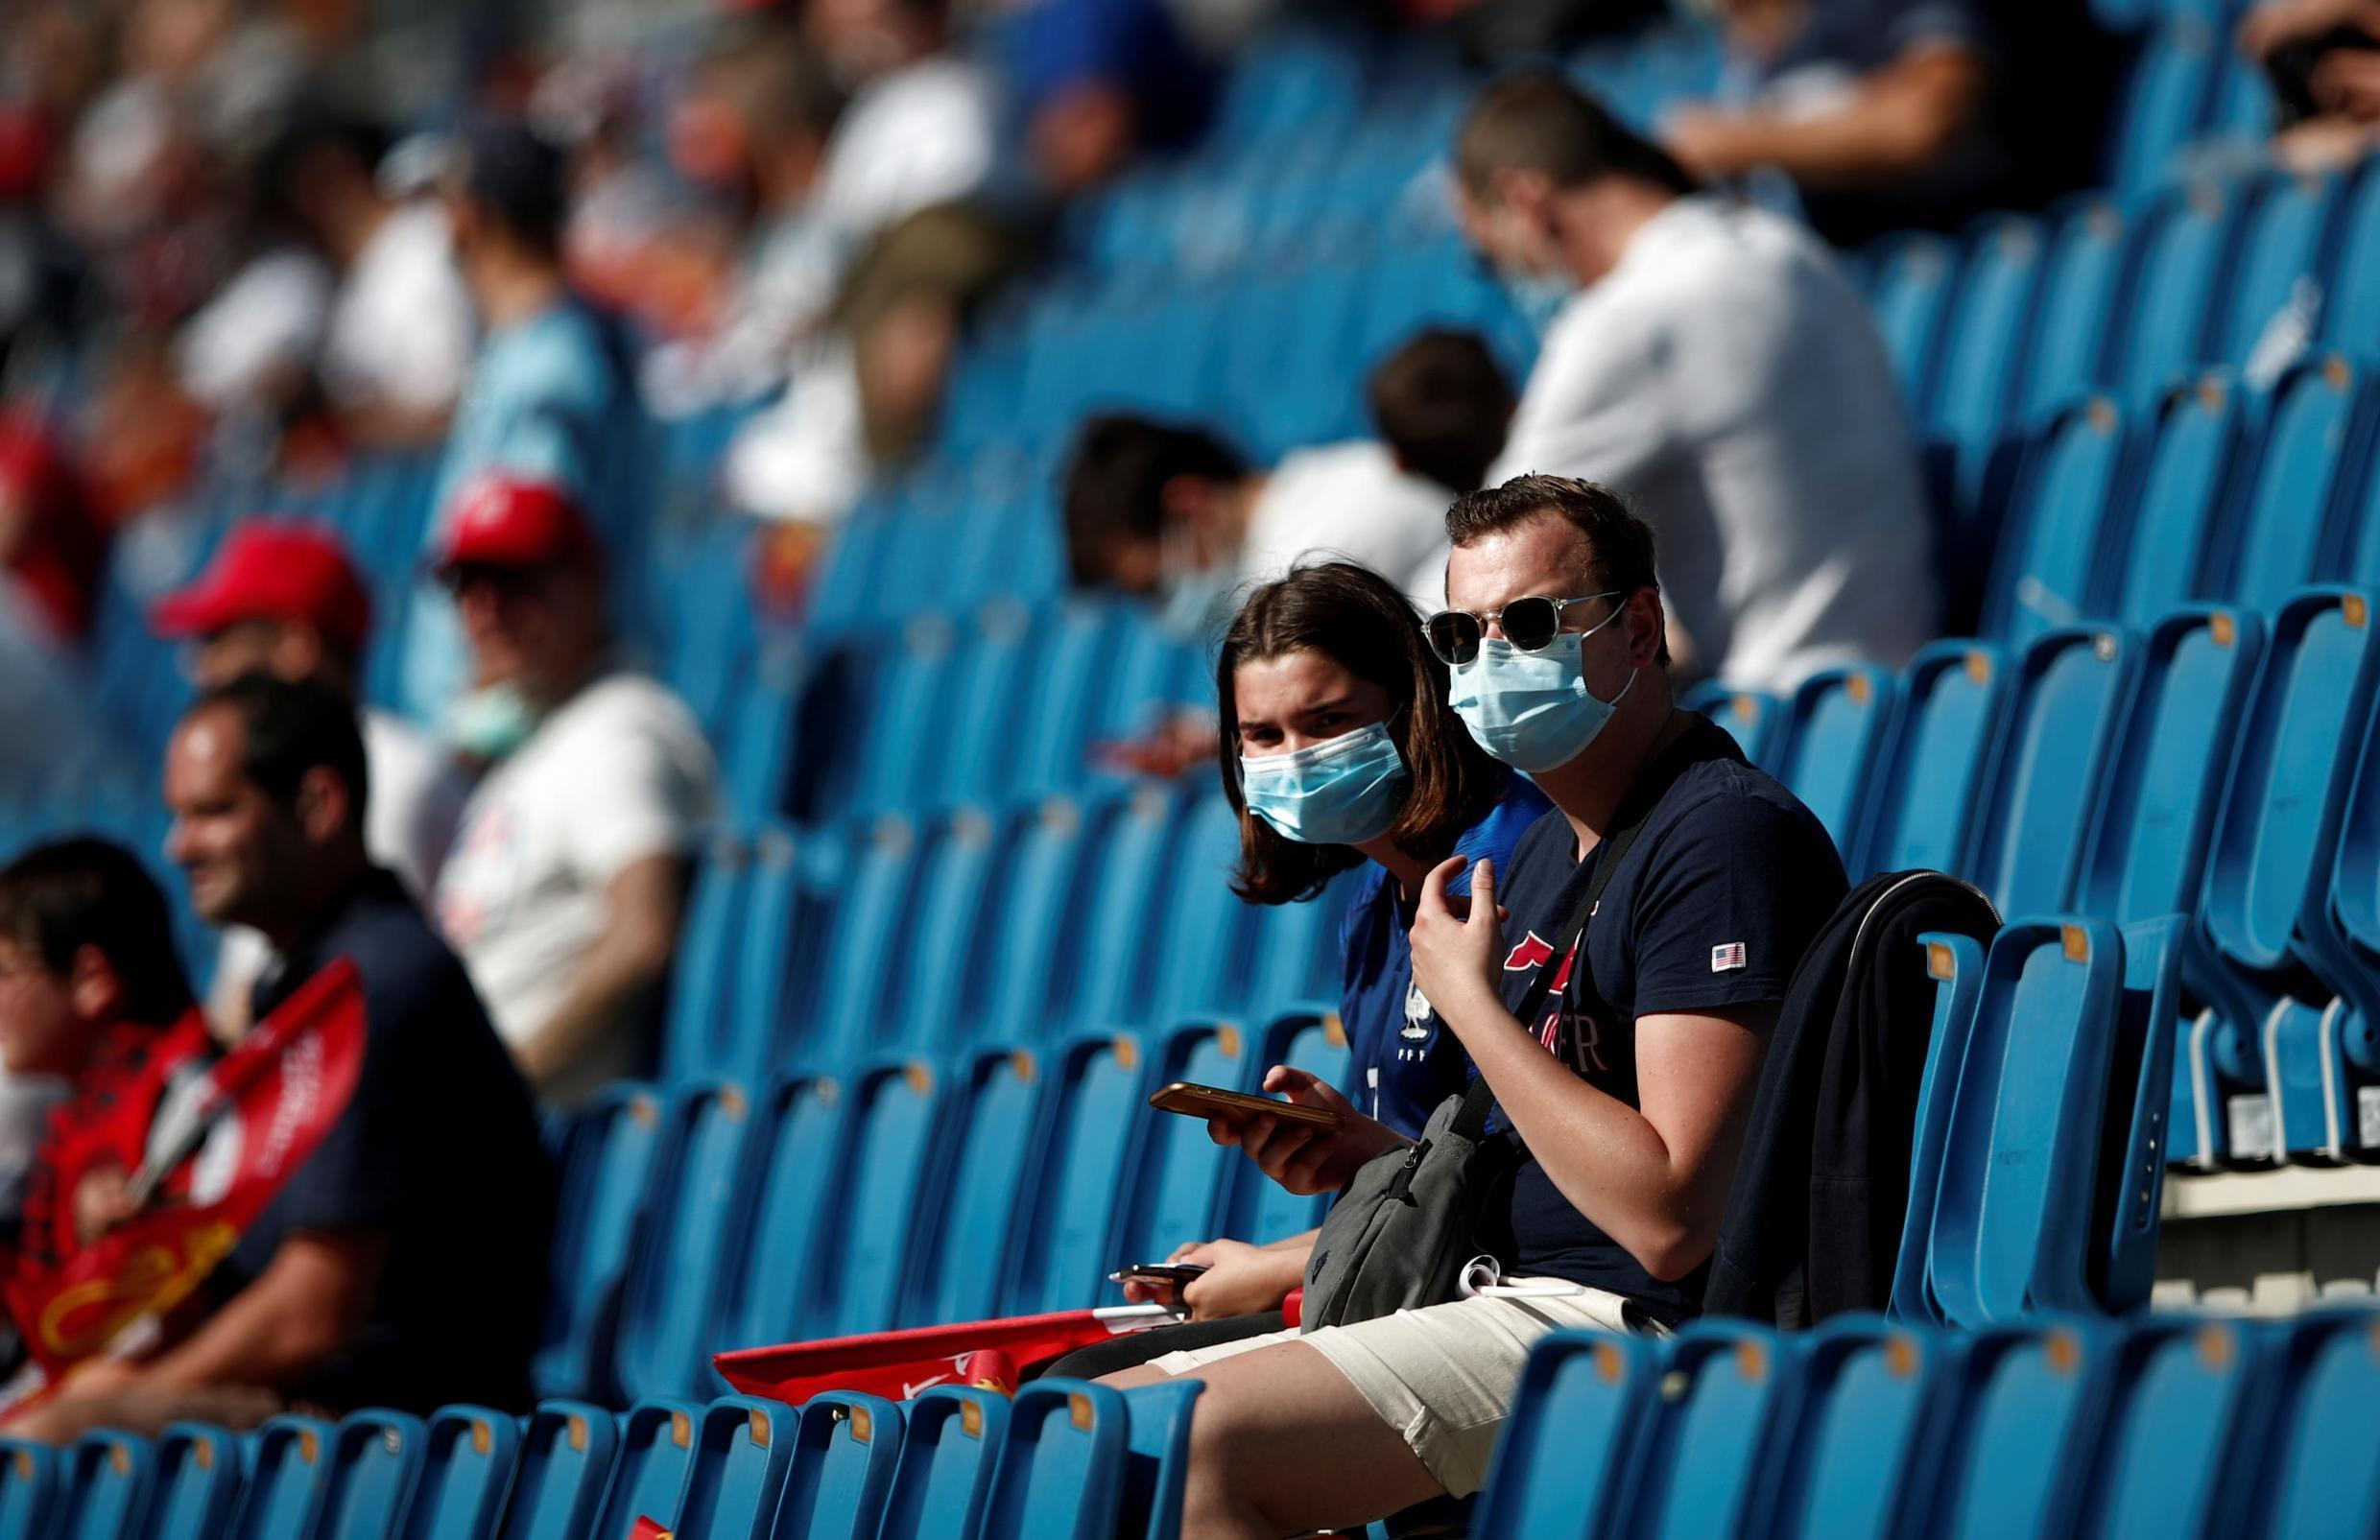 Some but not all French football spectators wear protective masks at the match between Le Havre and Paris Saint-Germain on Saturday. French officials are considering whether to impose masks in indoor locations.